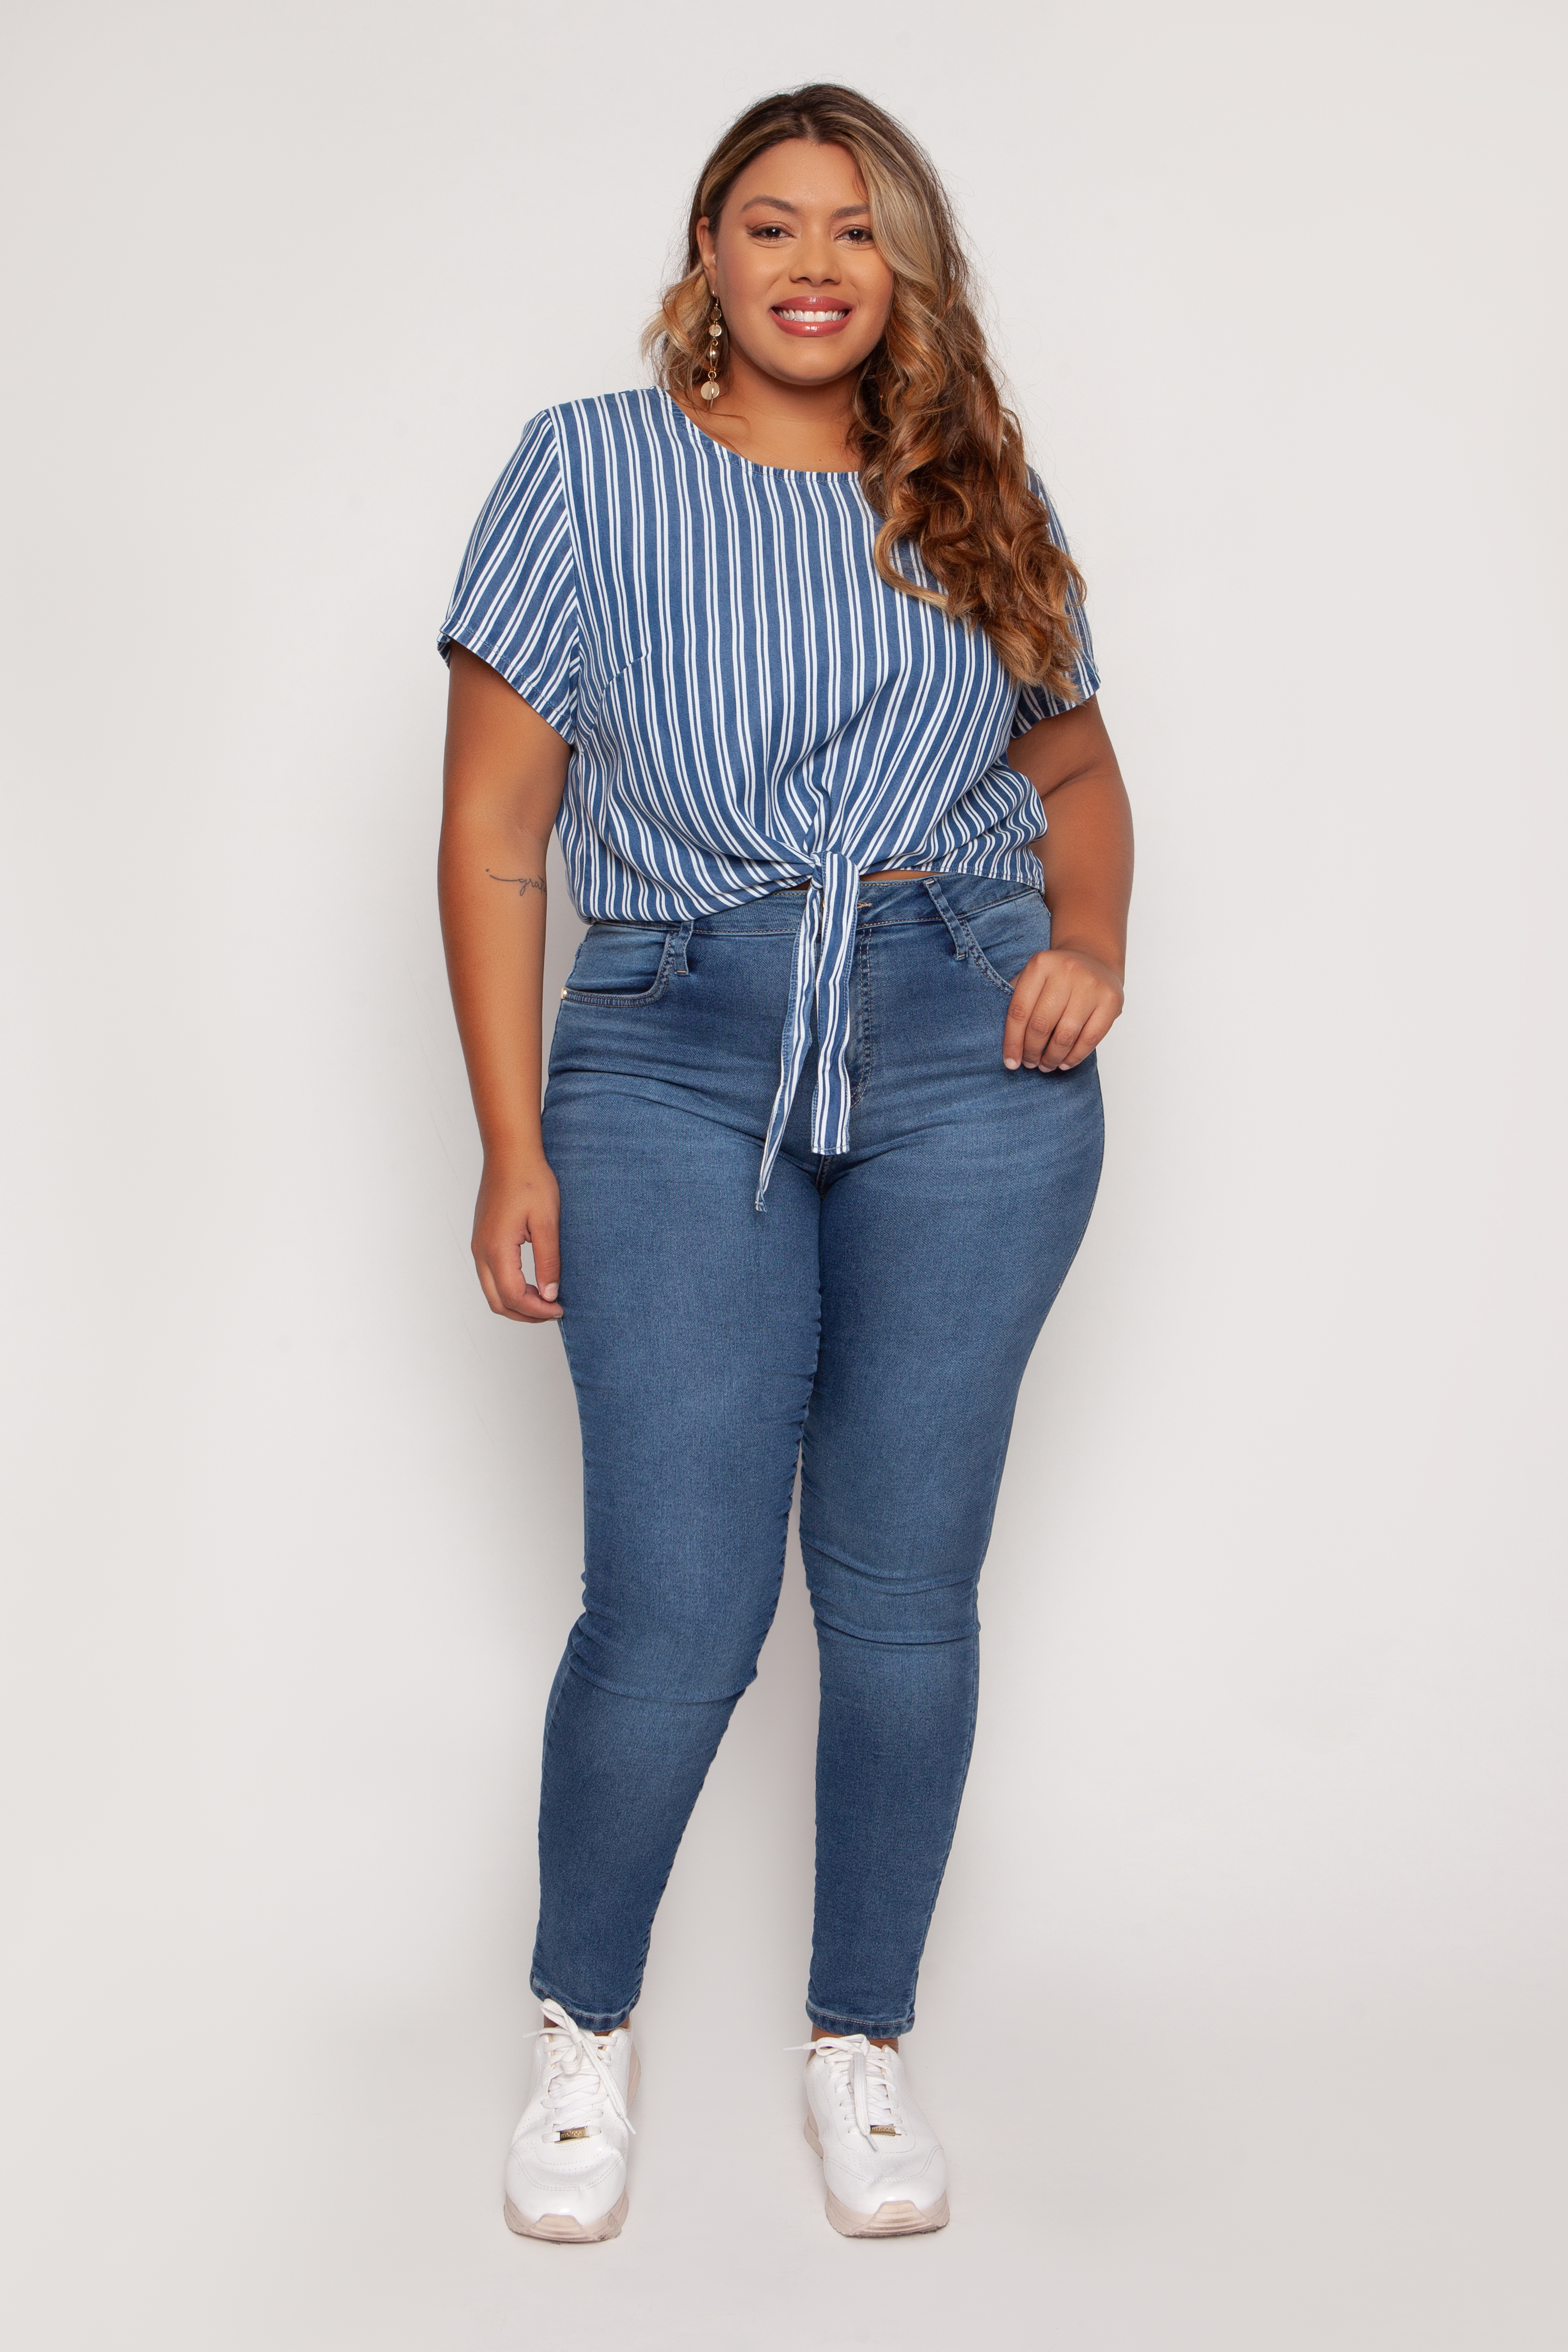 LS1937_Blusa_Plus_Size_Cropped_Listrada_Verona_Jeans_AZUL_3